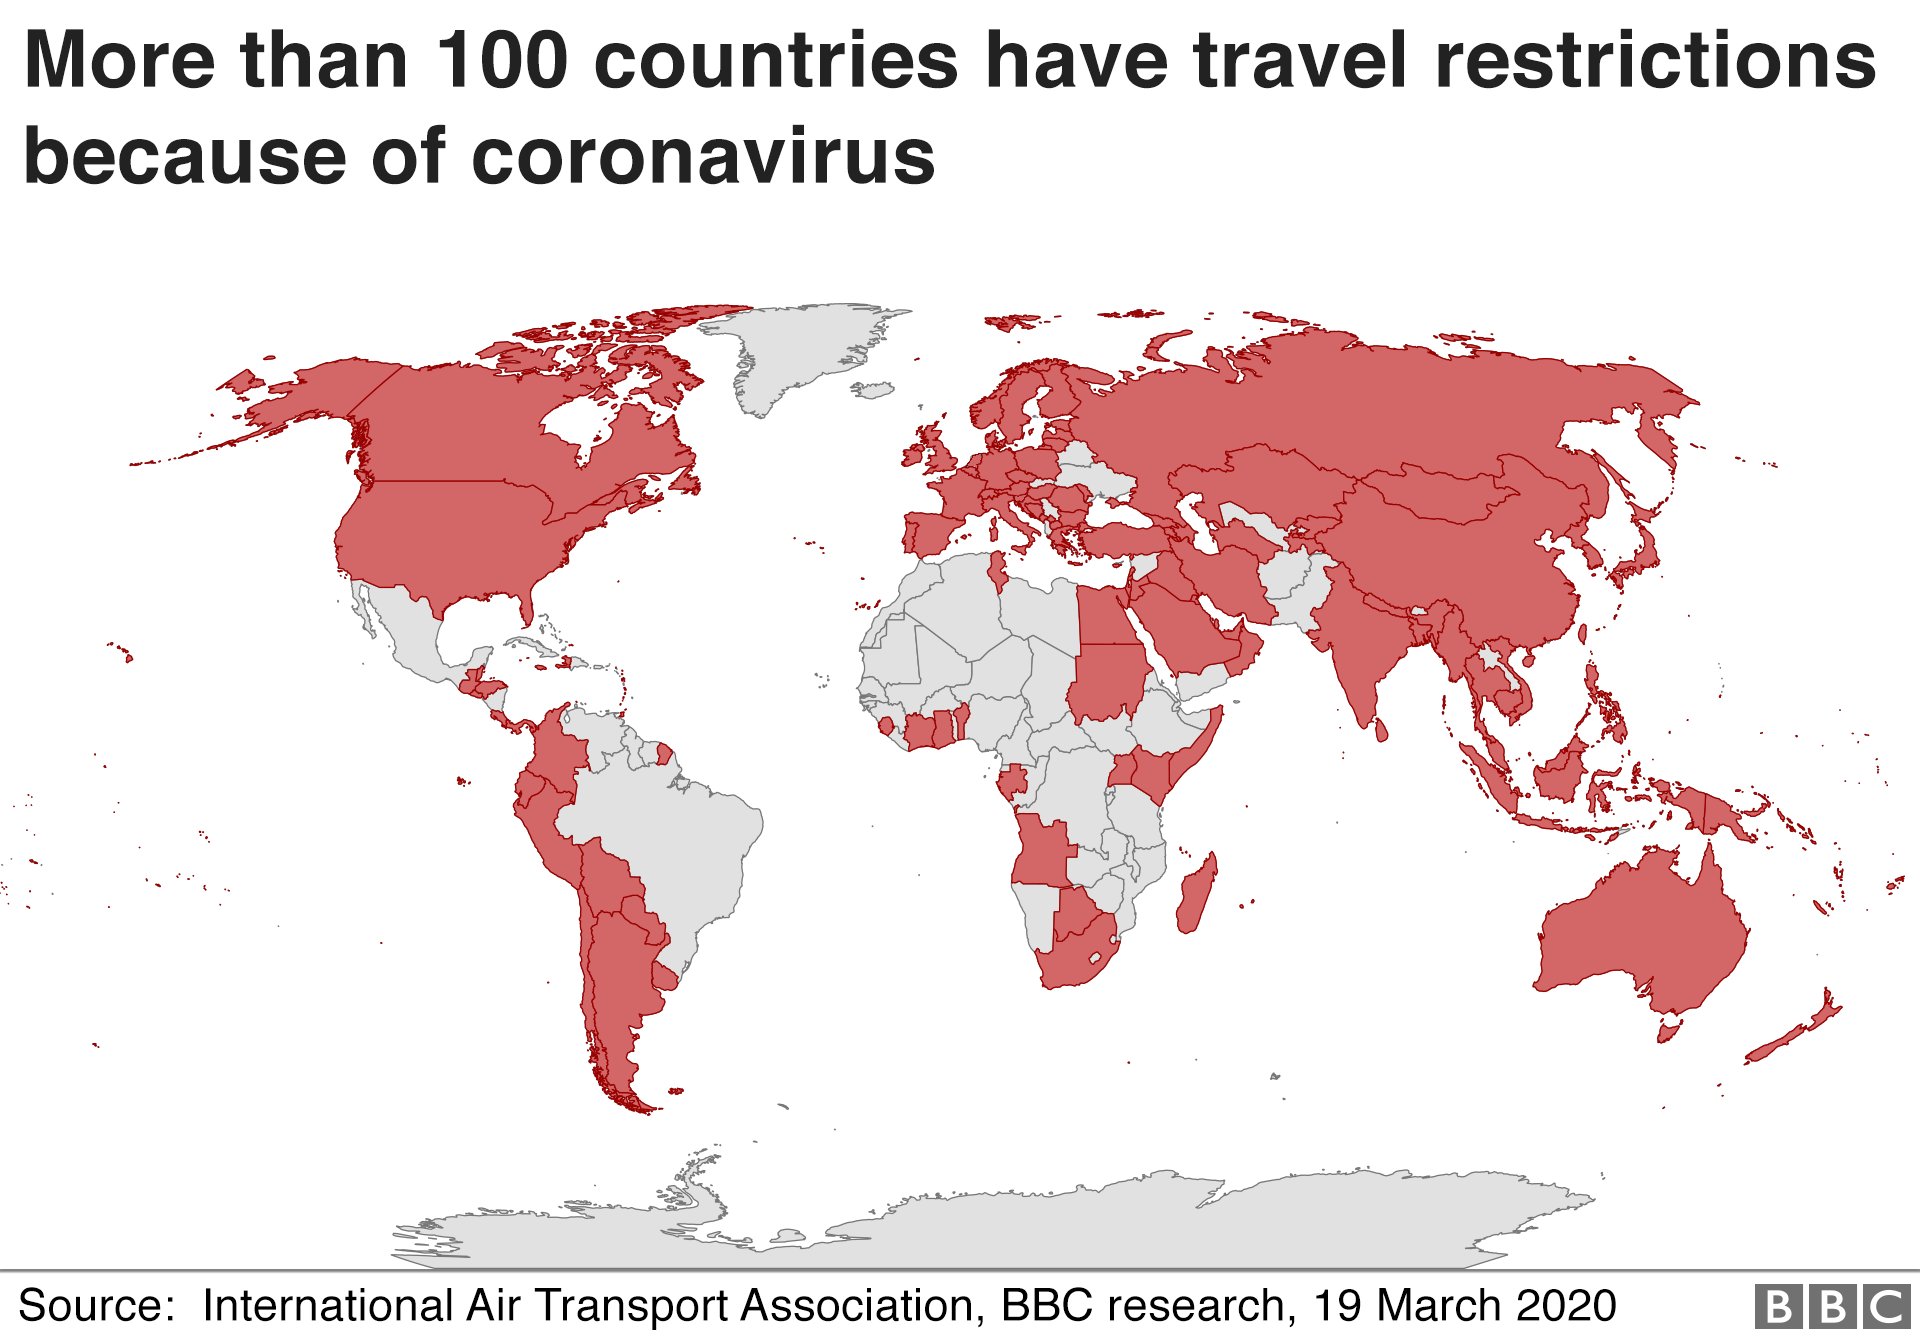 Map showing countries with travel restrictions - 19 March